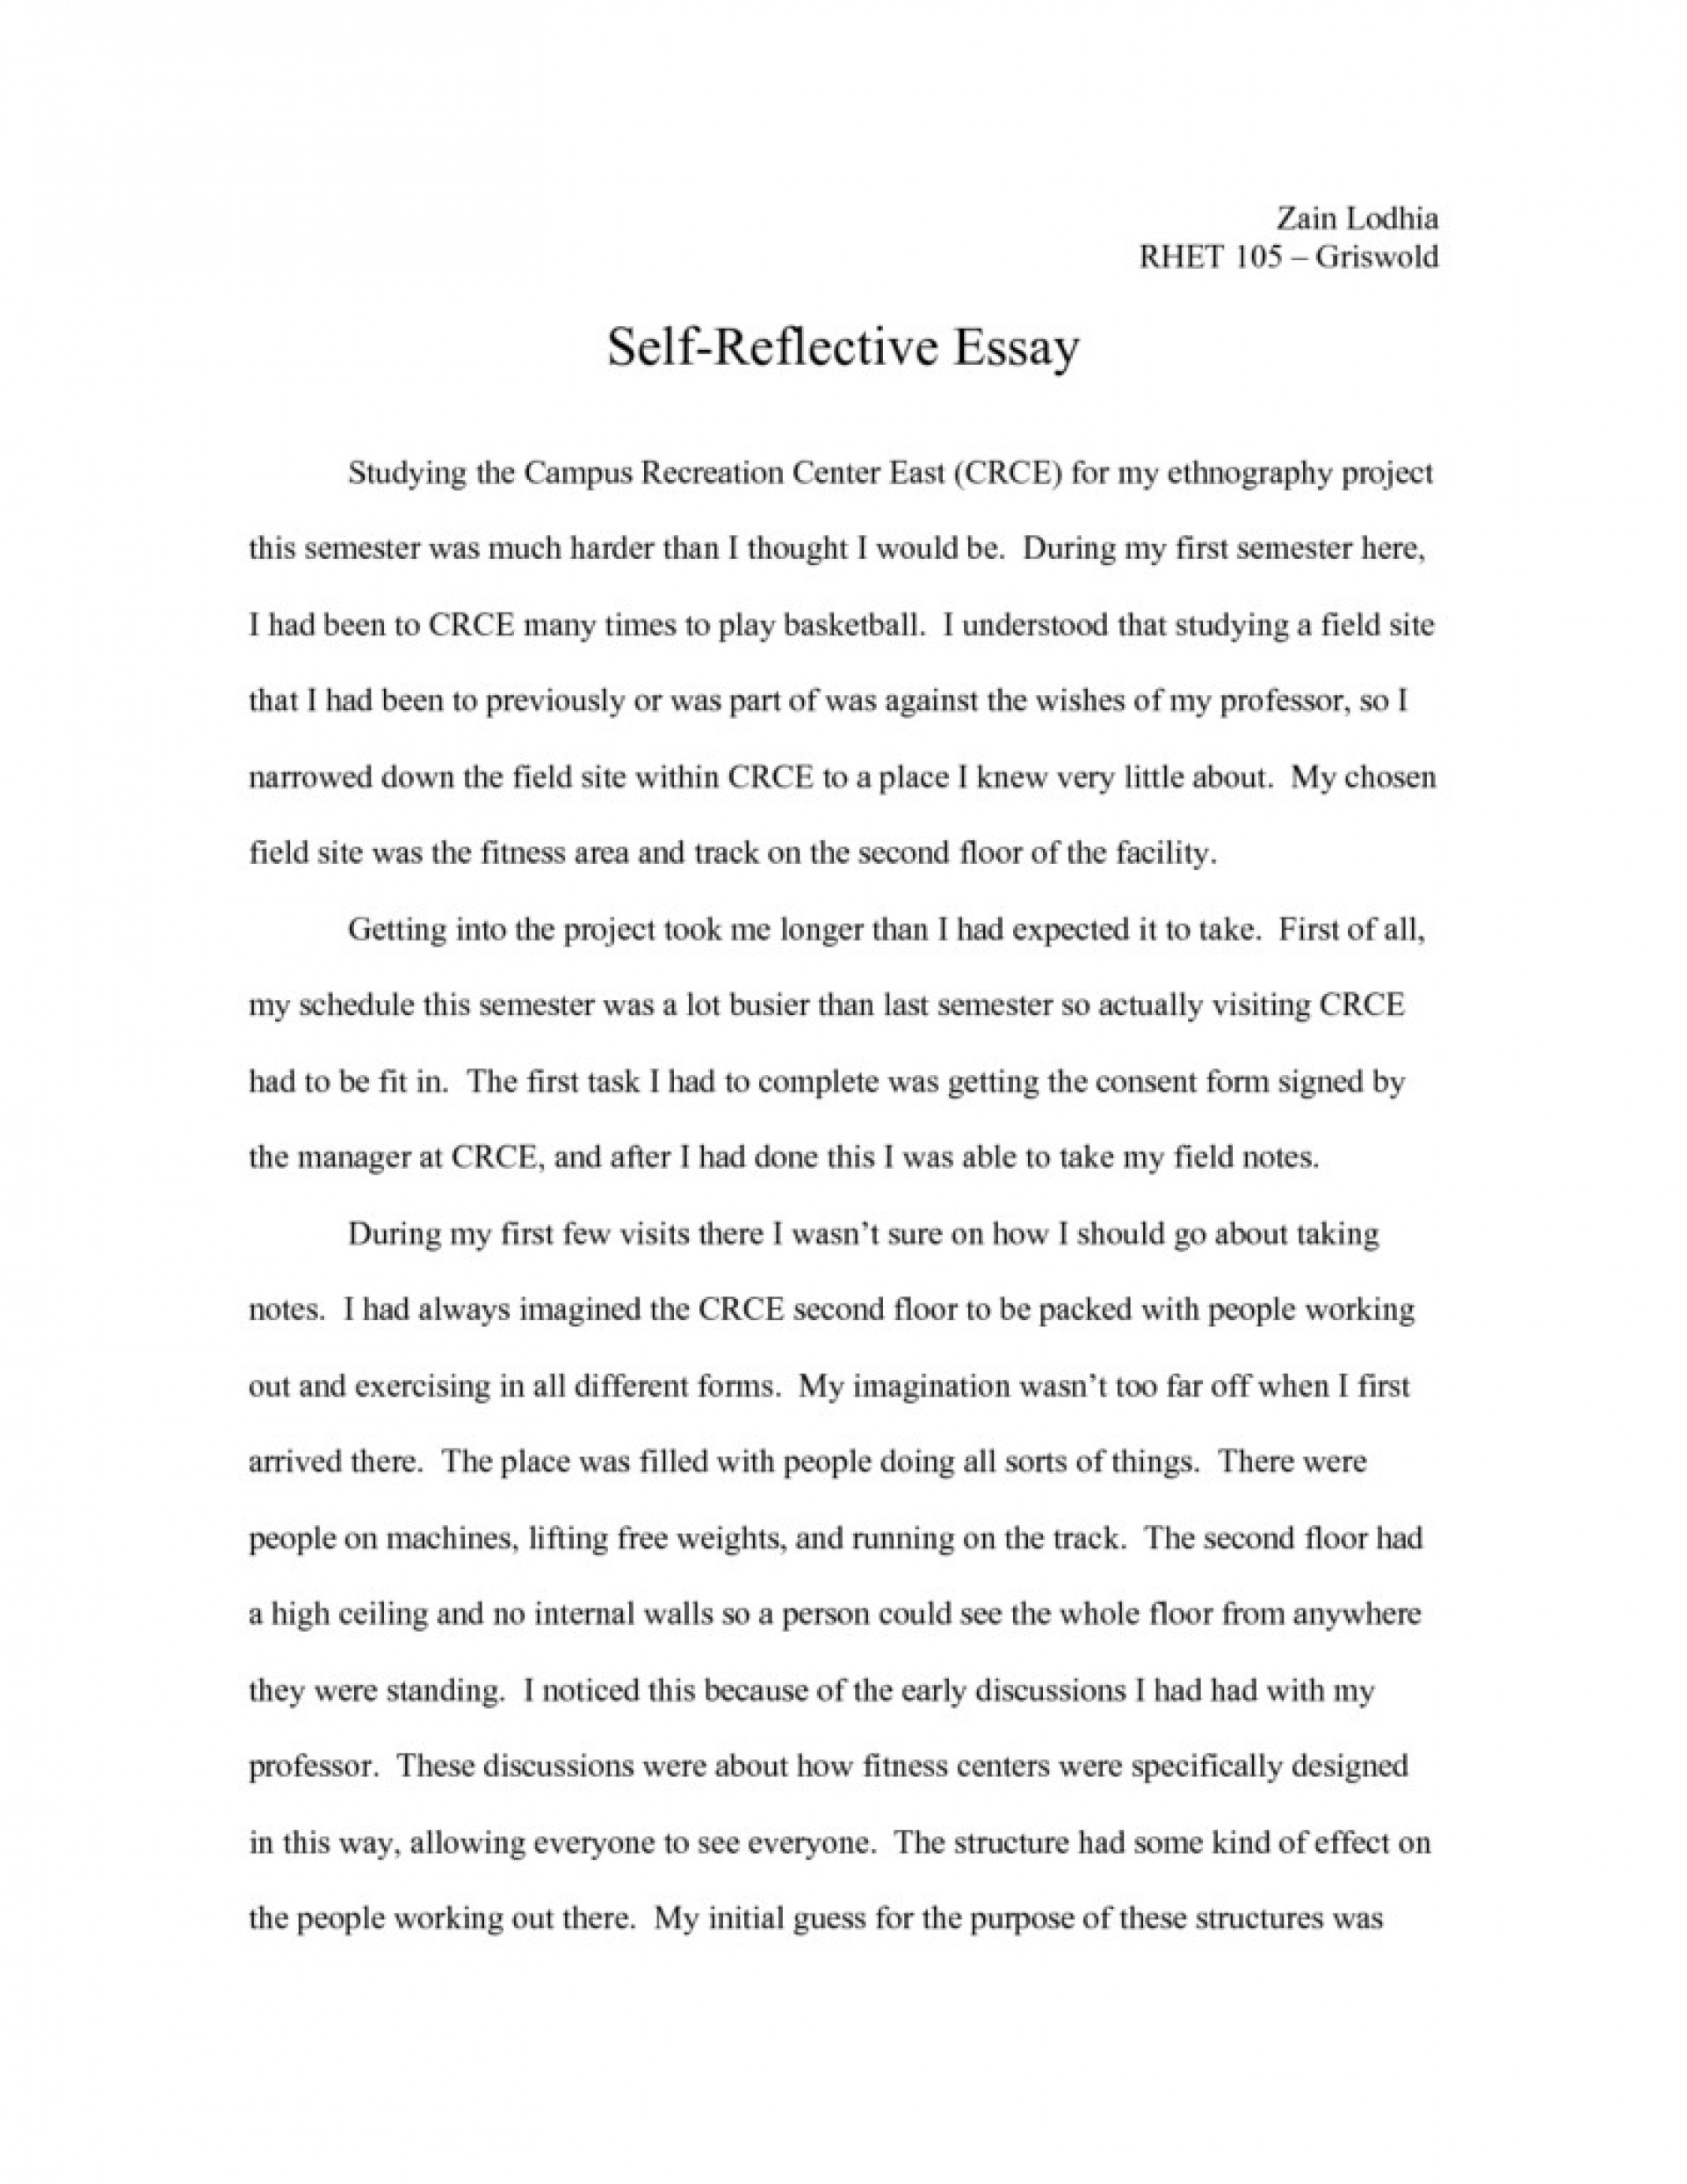 005 Writing Reflective Essay Essays Examples Smart Portray Of Self Reflection About Me Example Astounding High School Students Life 1920